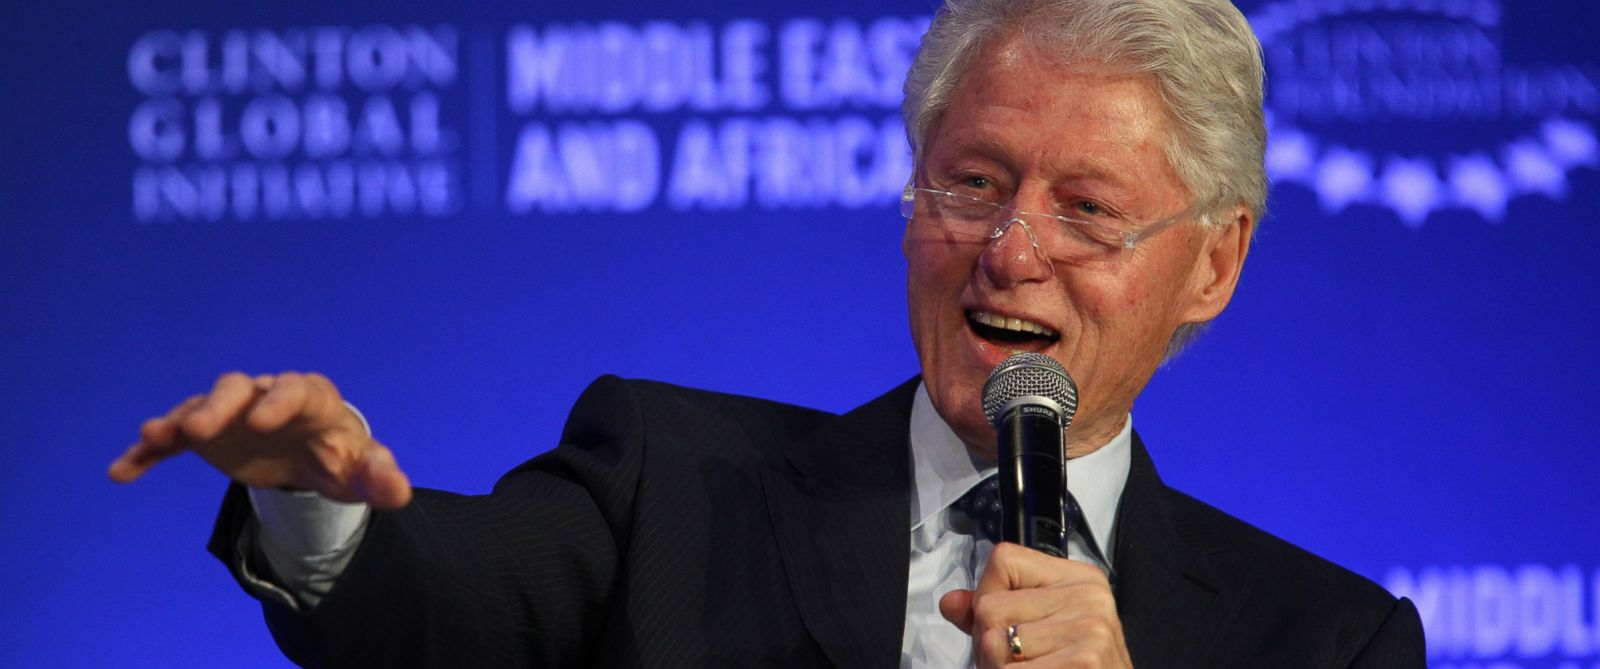 PHOTO: Former U.S President Bill Clinton speaks during a plenary session at the Clinton Global Initiative Middle East & Africa meeting in Marrakech, Morocco, May 6, 2015.